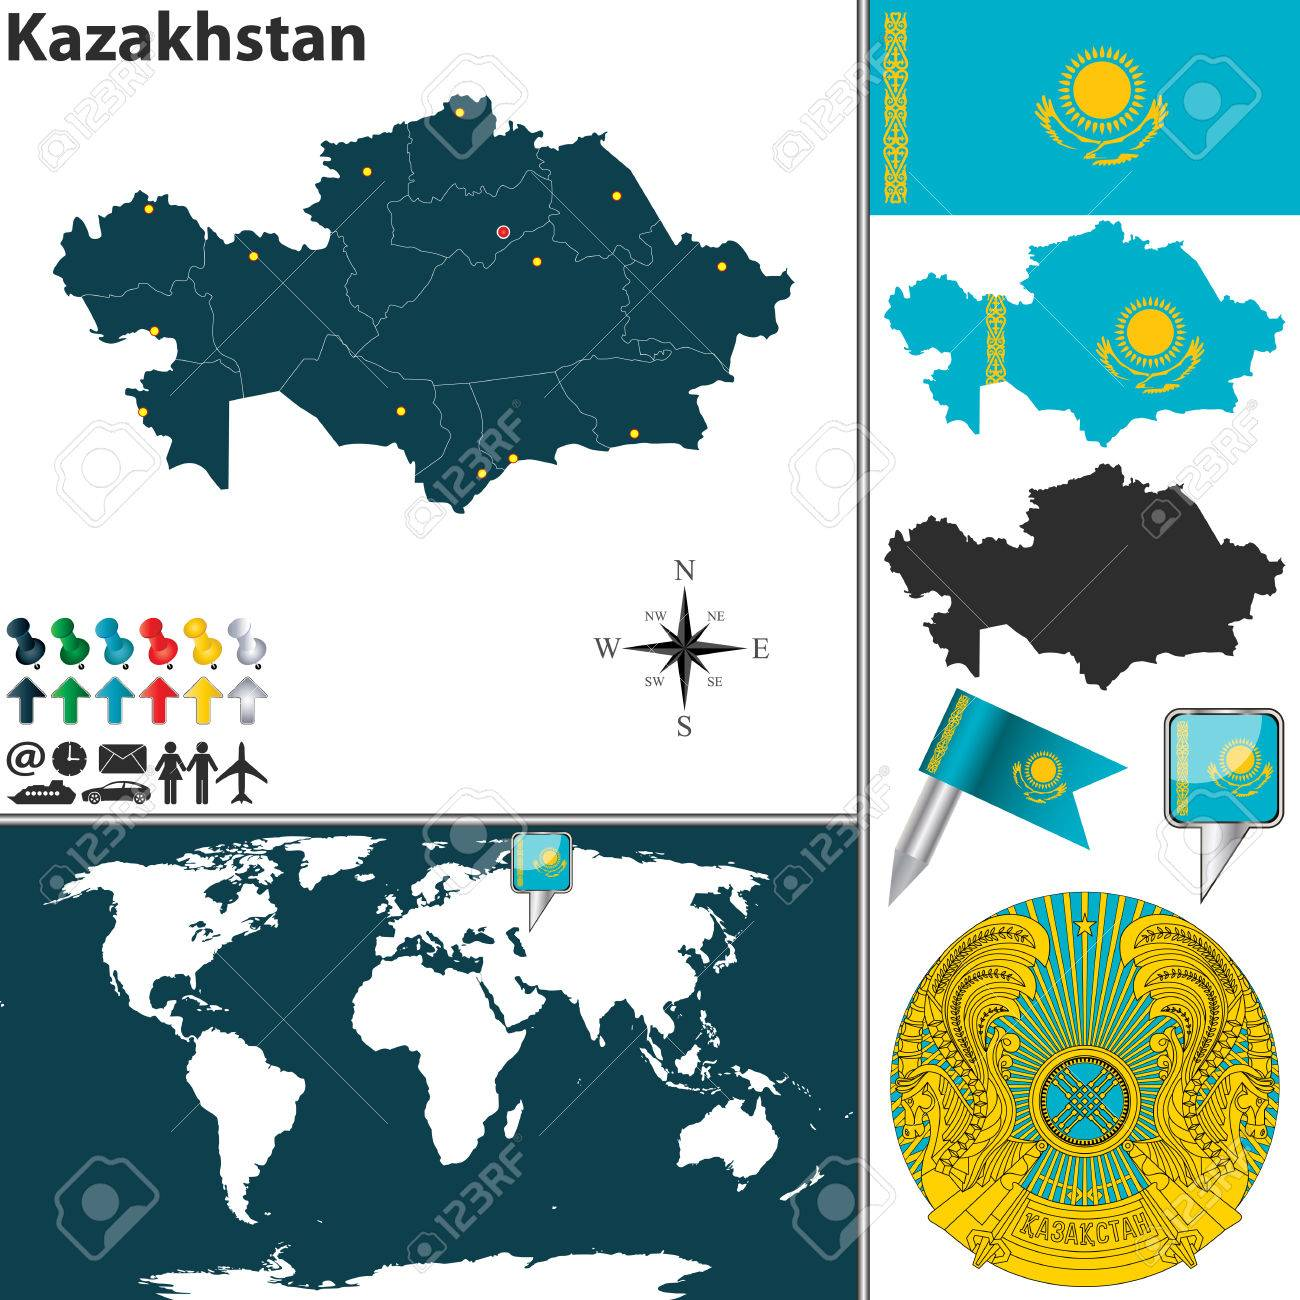 map of Kazakhstan with regions, coat of arms and location on.. Kazakhstan On World Map on iraq on world map, south africa on world map, tajikistan on world map, germany on world map, laos on world map, iran on world map, qatar on world map, egypt on world map, taiwan on world map, luxembourg on world map, latvia on world map, tibet on world map, algeria on world map, ukraine on world map, kuwait on world map, lesotho on world map, azerbaijan on world map, gabon on world map, kenya on world map, indonesia on world map,